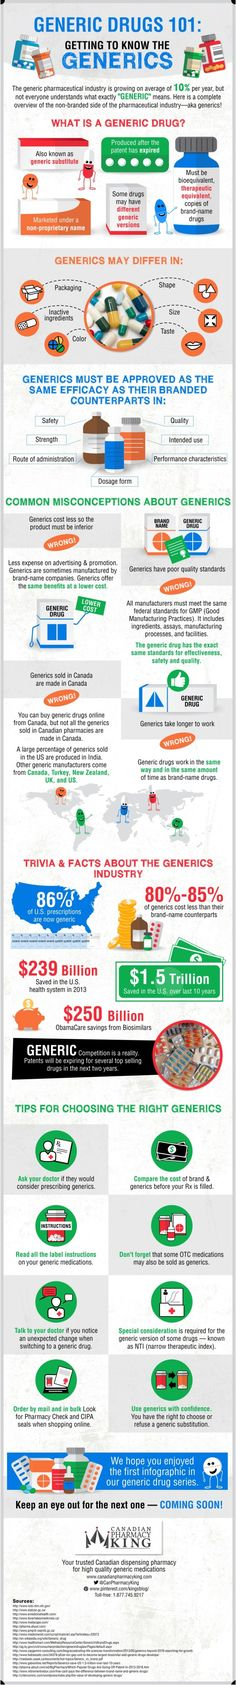 Generic Drugs 101: Getting to Know the Generics   [by Canadian Pharmacy King -- via #tipsographic]. More at tipsographic.com